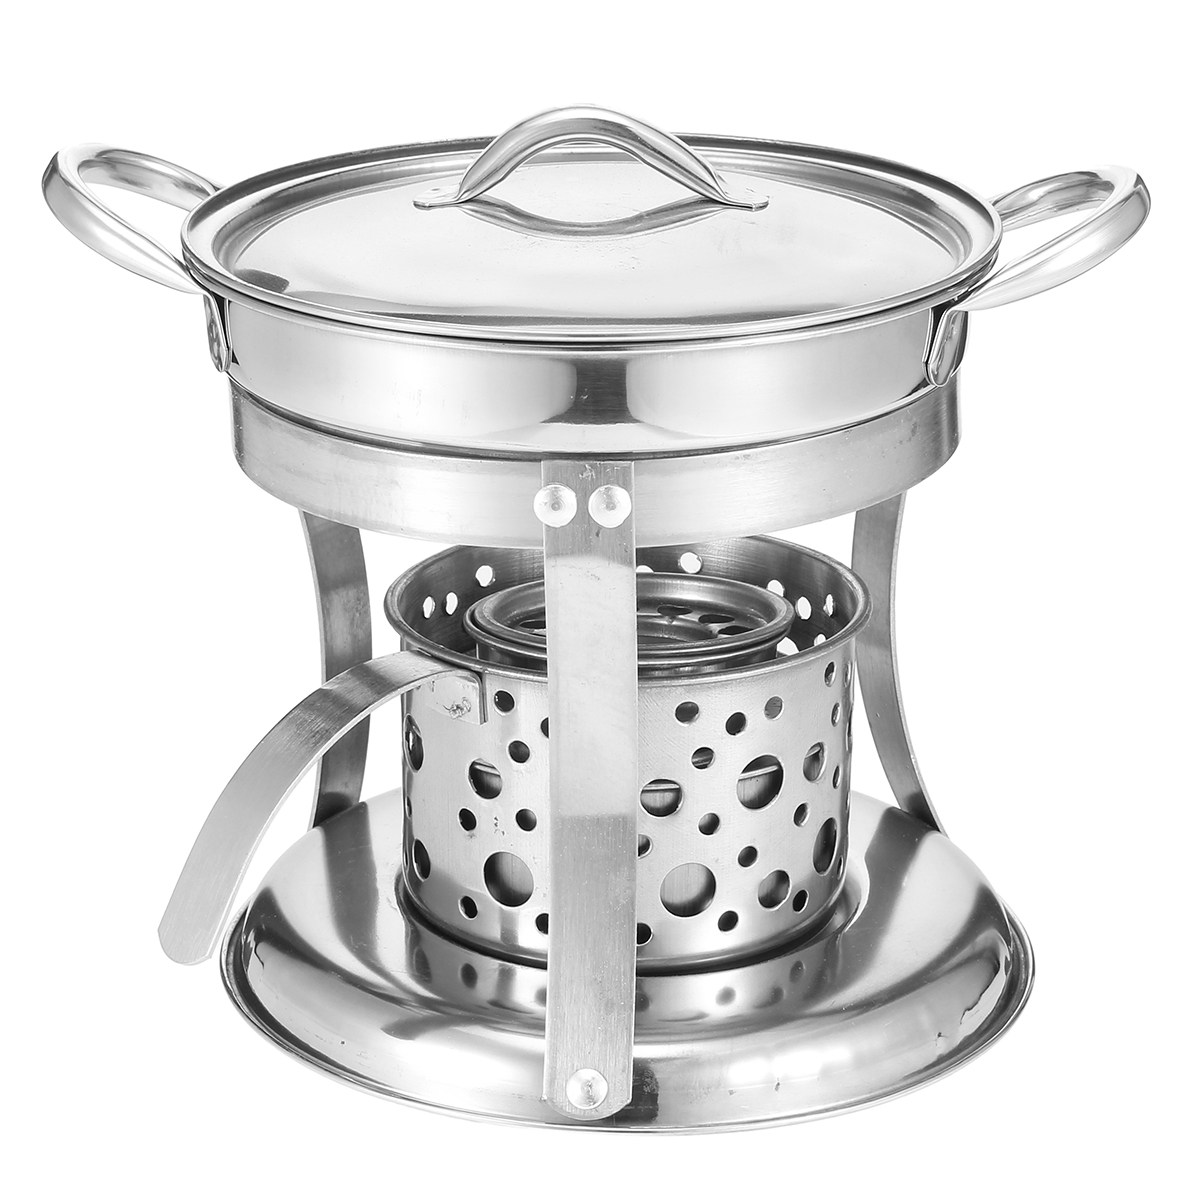 New DIY Shabu Shabu Stainless Steel Hot Pot With Alcohol Burner & Lid Kitchen Cooking Tools Winter Party Cookware Soup Pot